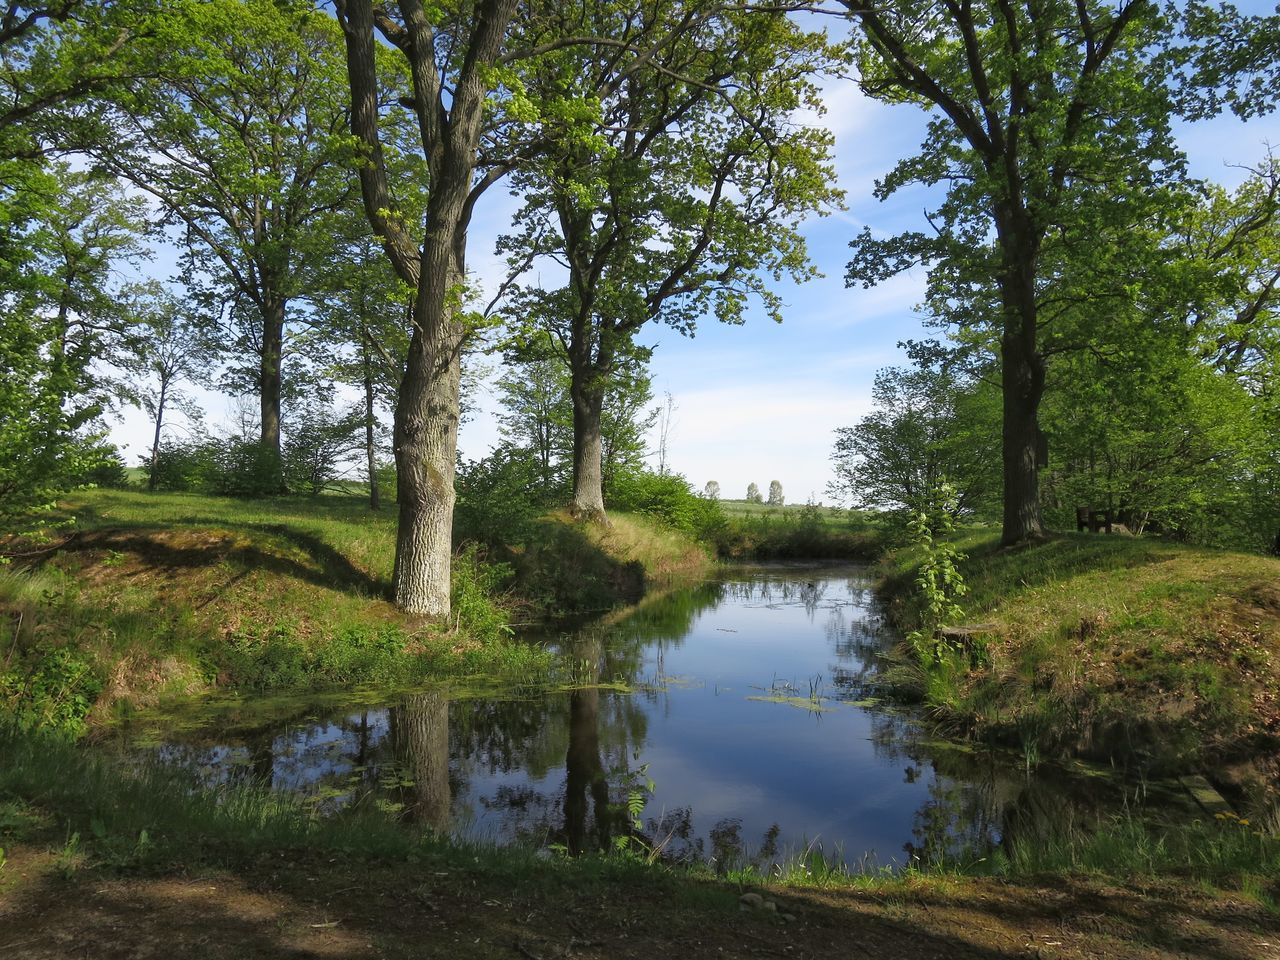 Water Reflection Carp Pond Nature Walking Outdoors Forest Trees Oak Trees